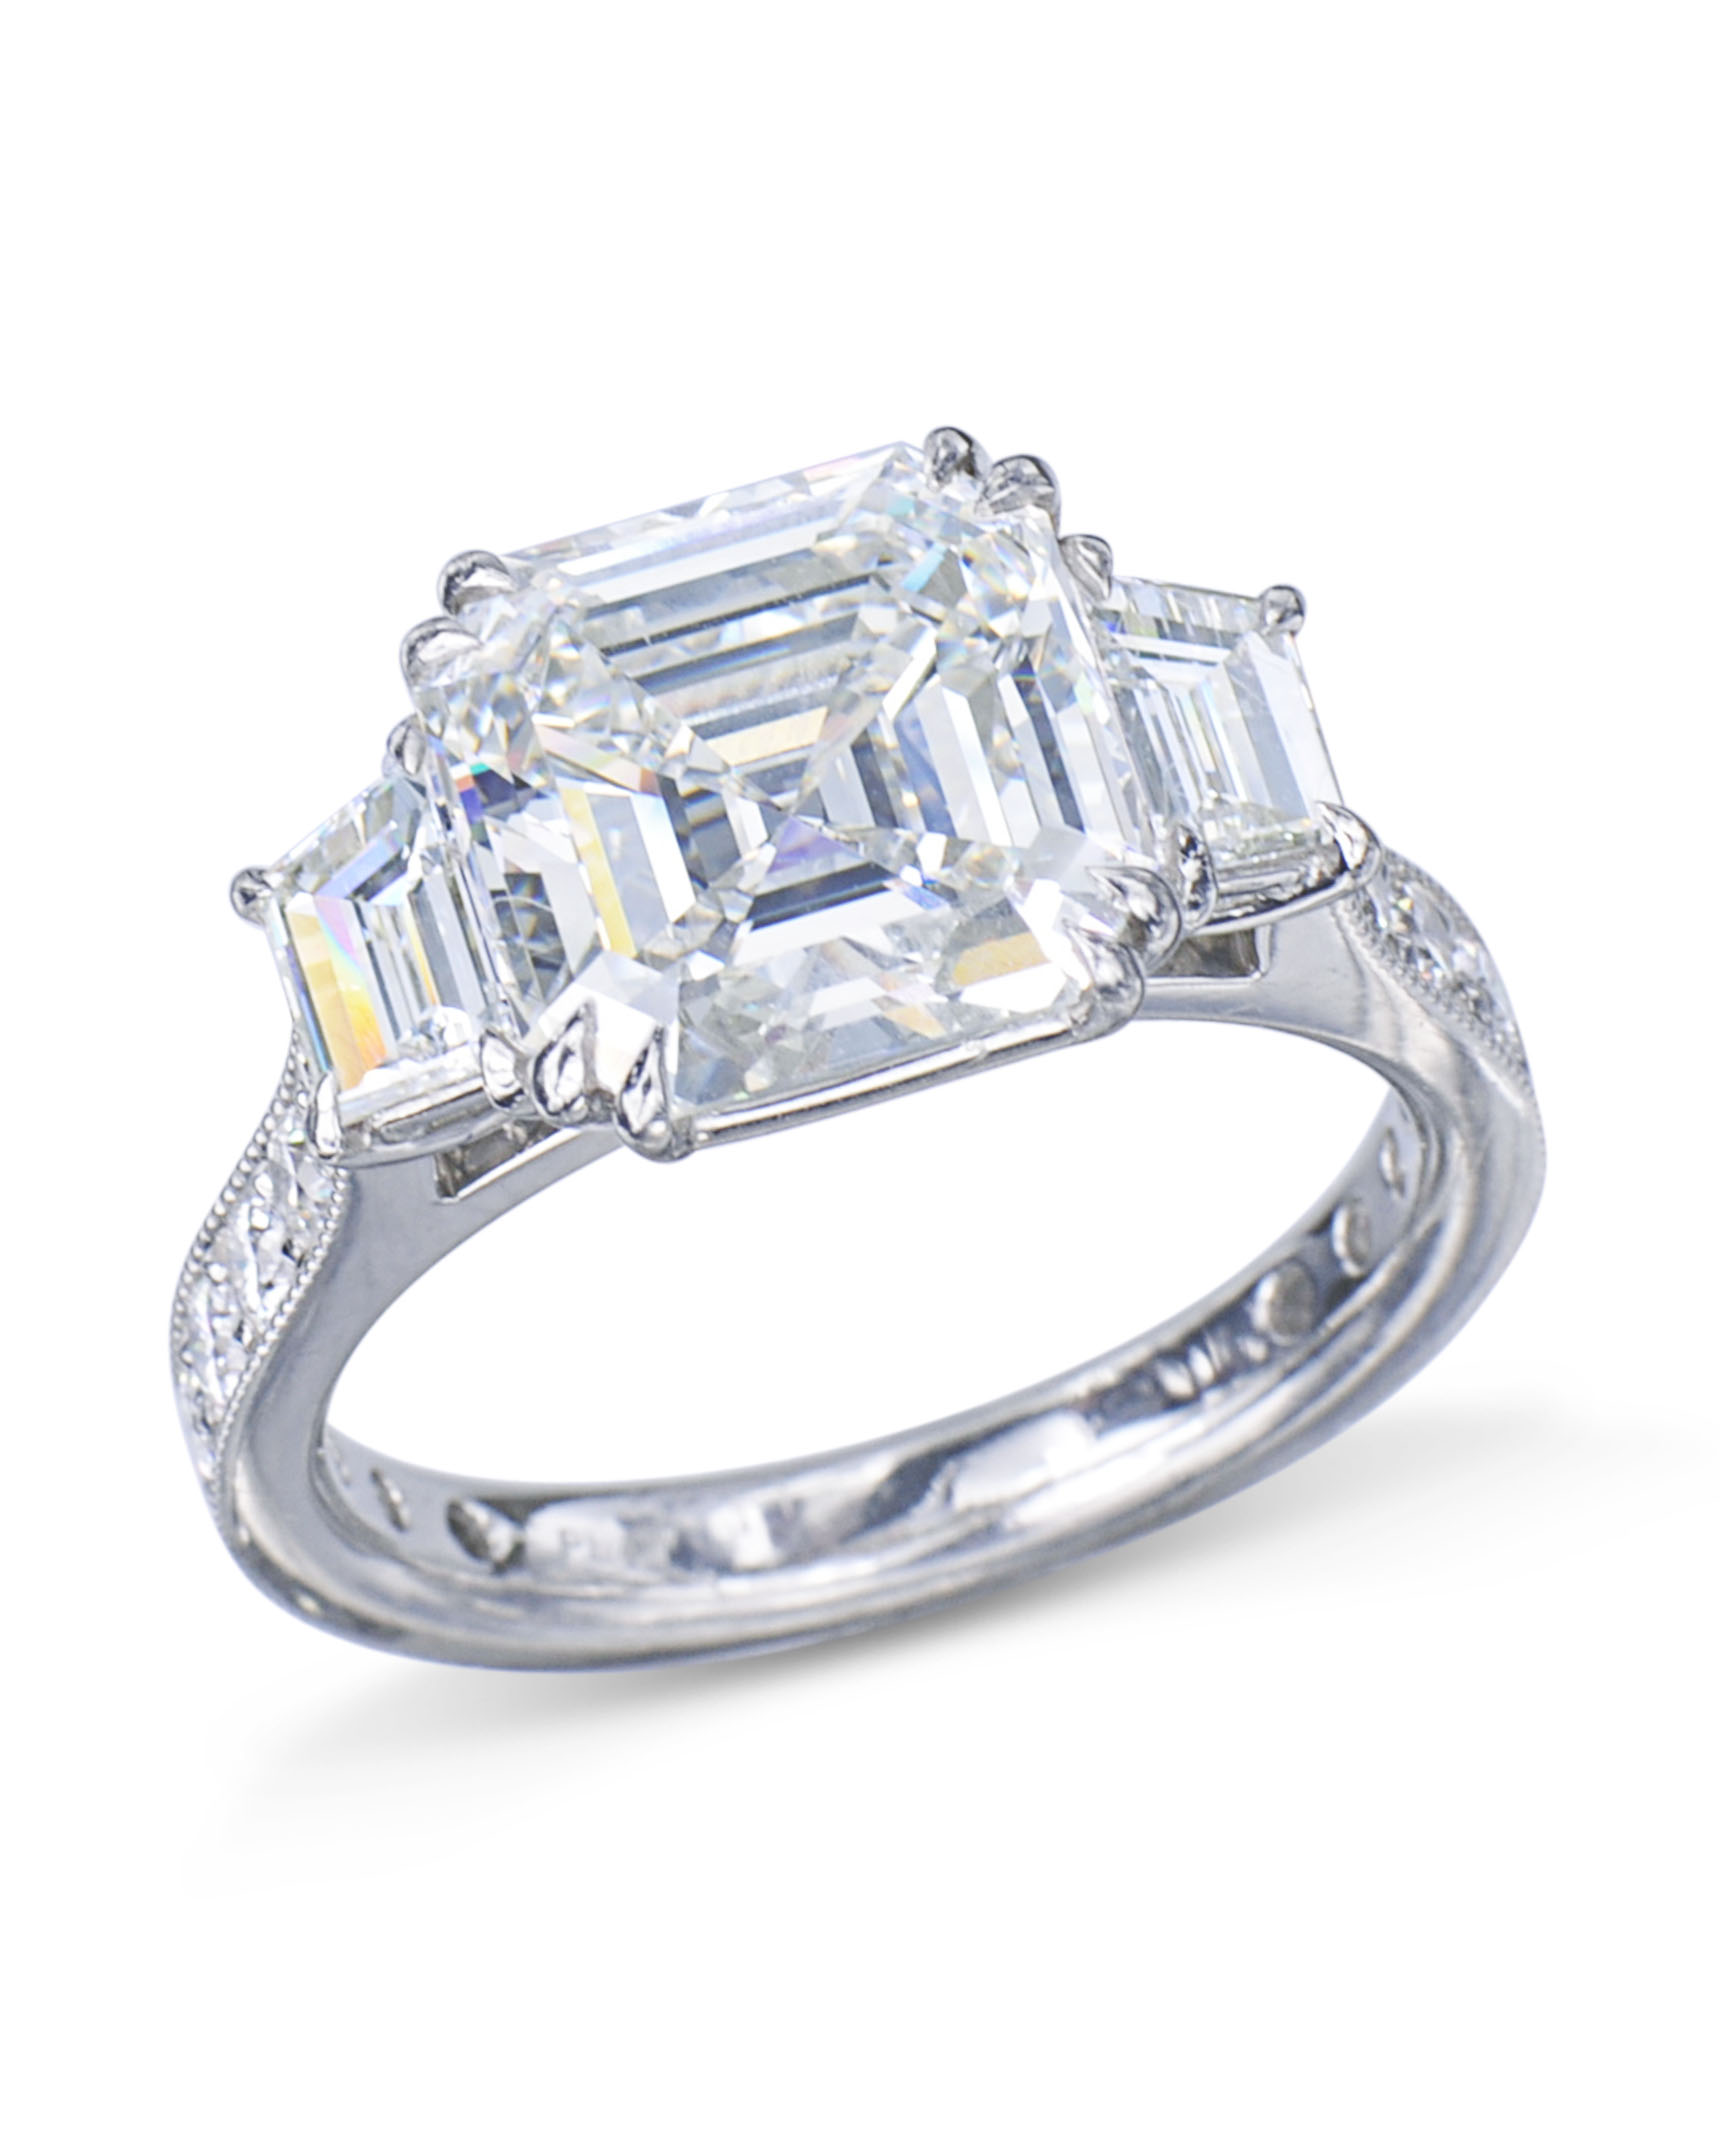 size aqua pron product pytell asscher ready a kind one theresa ship rings to of cut march ring rose aquamarine prong gold